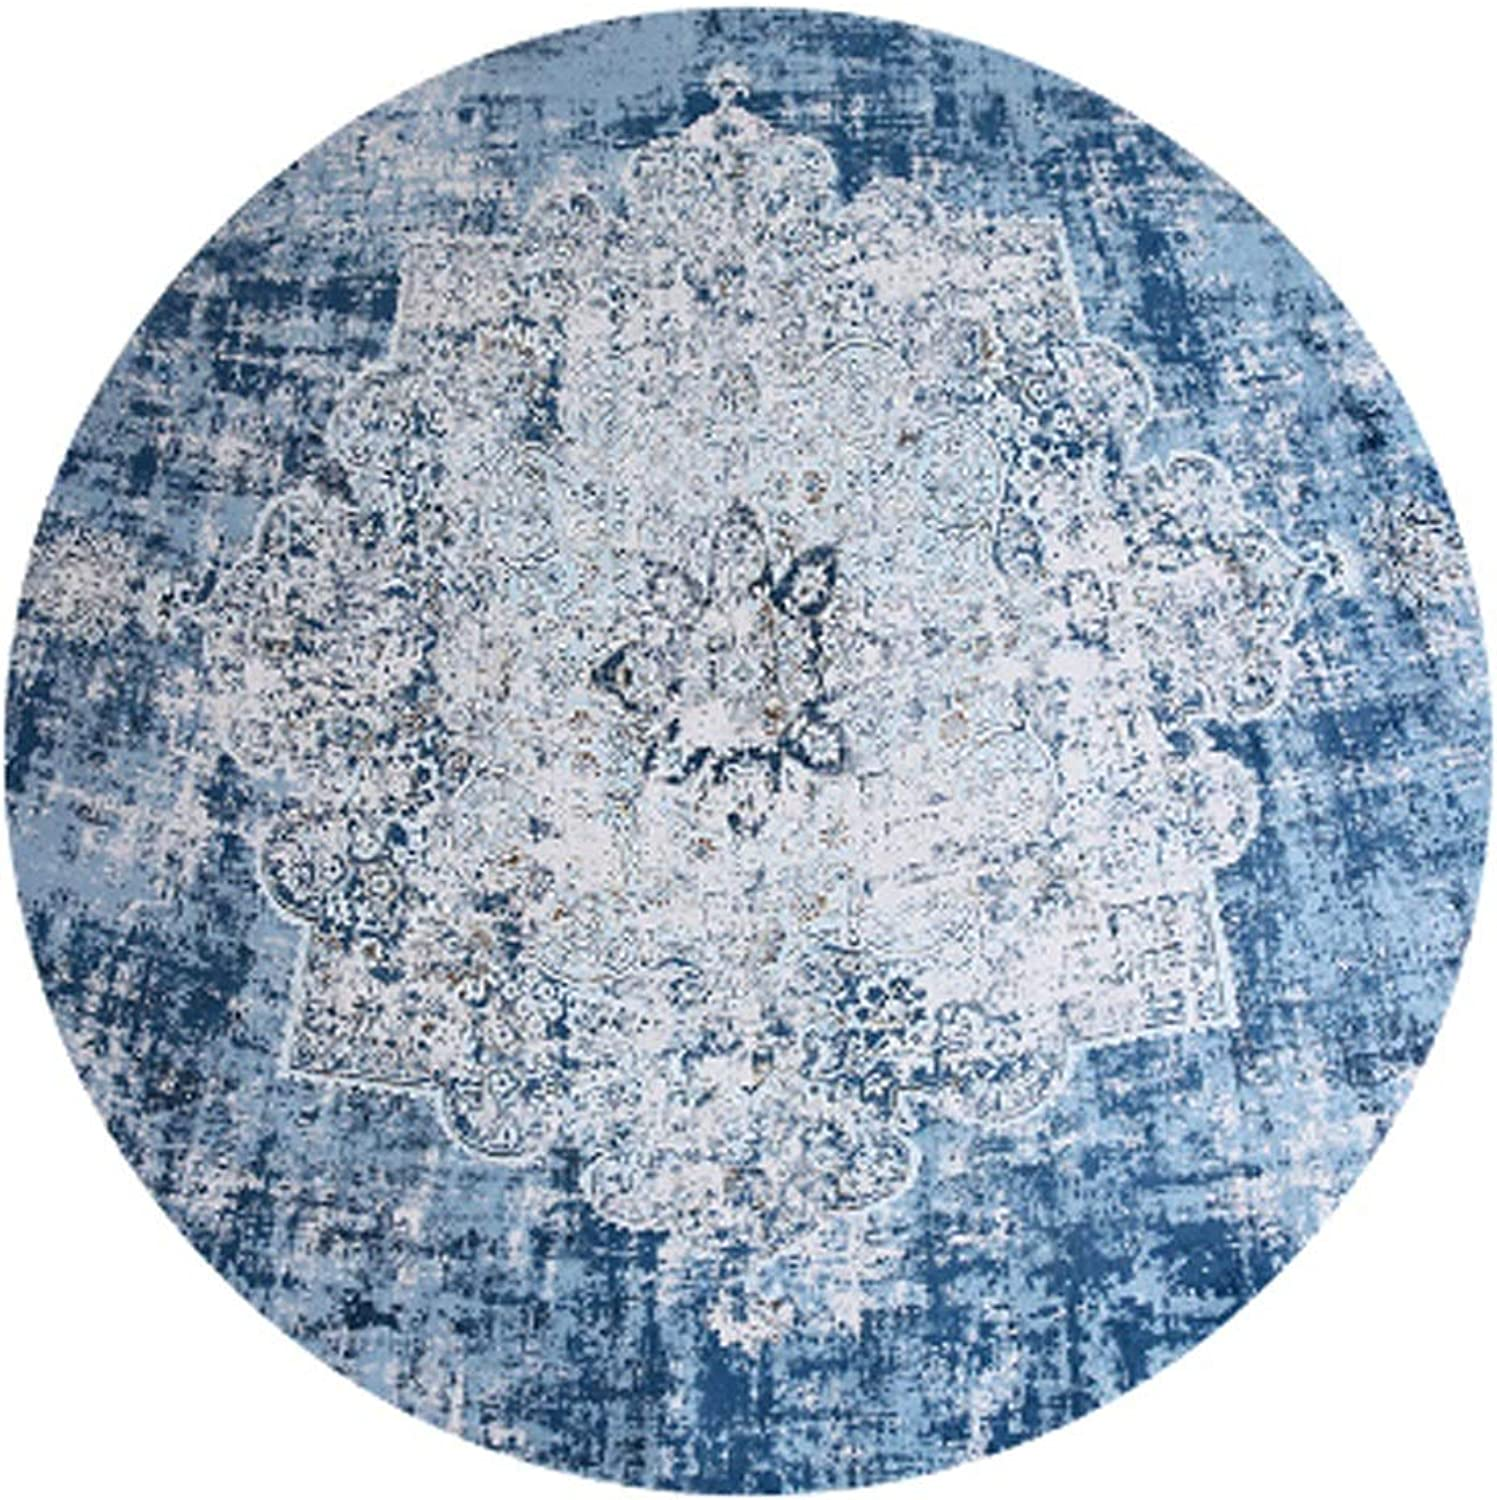 Carpet Round Carpet Simple Living Room Rug American Coffee Table mat Bedroom Bedside Rug Computer Chair Rug Soft and Comfortable (color   bluee, Size   Diameter 160cm)